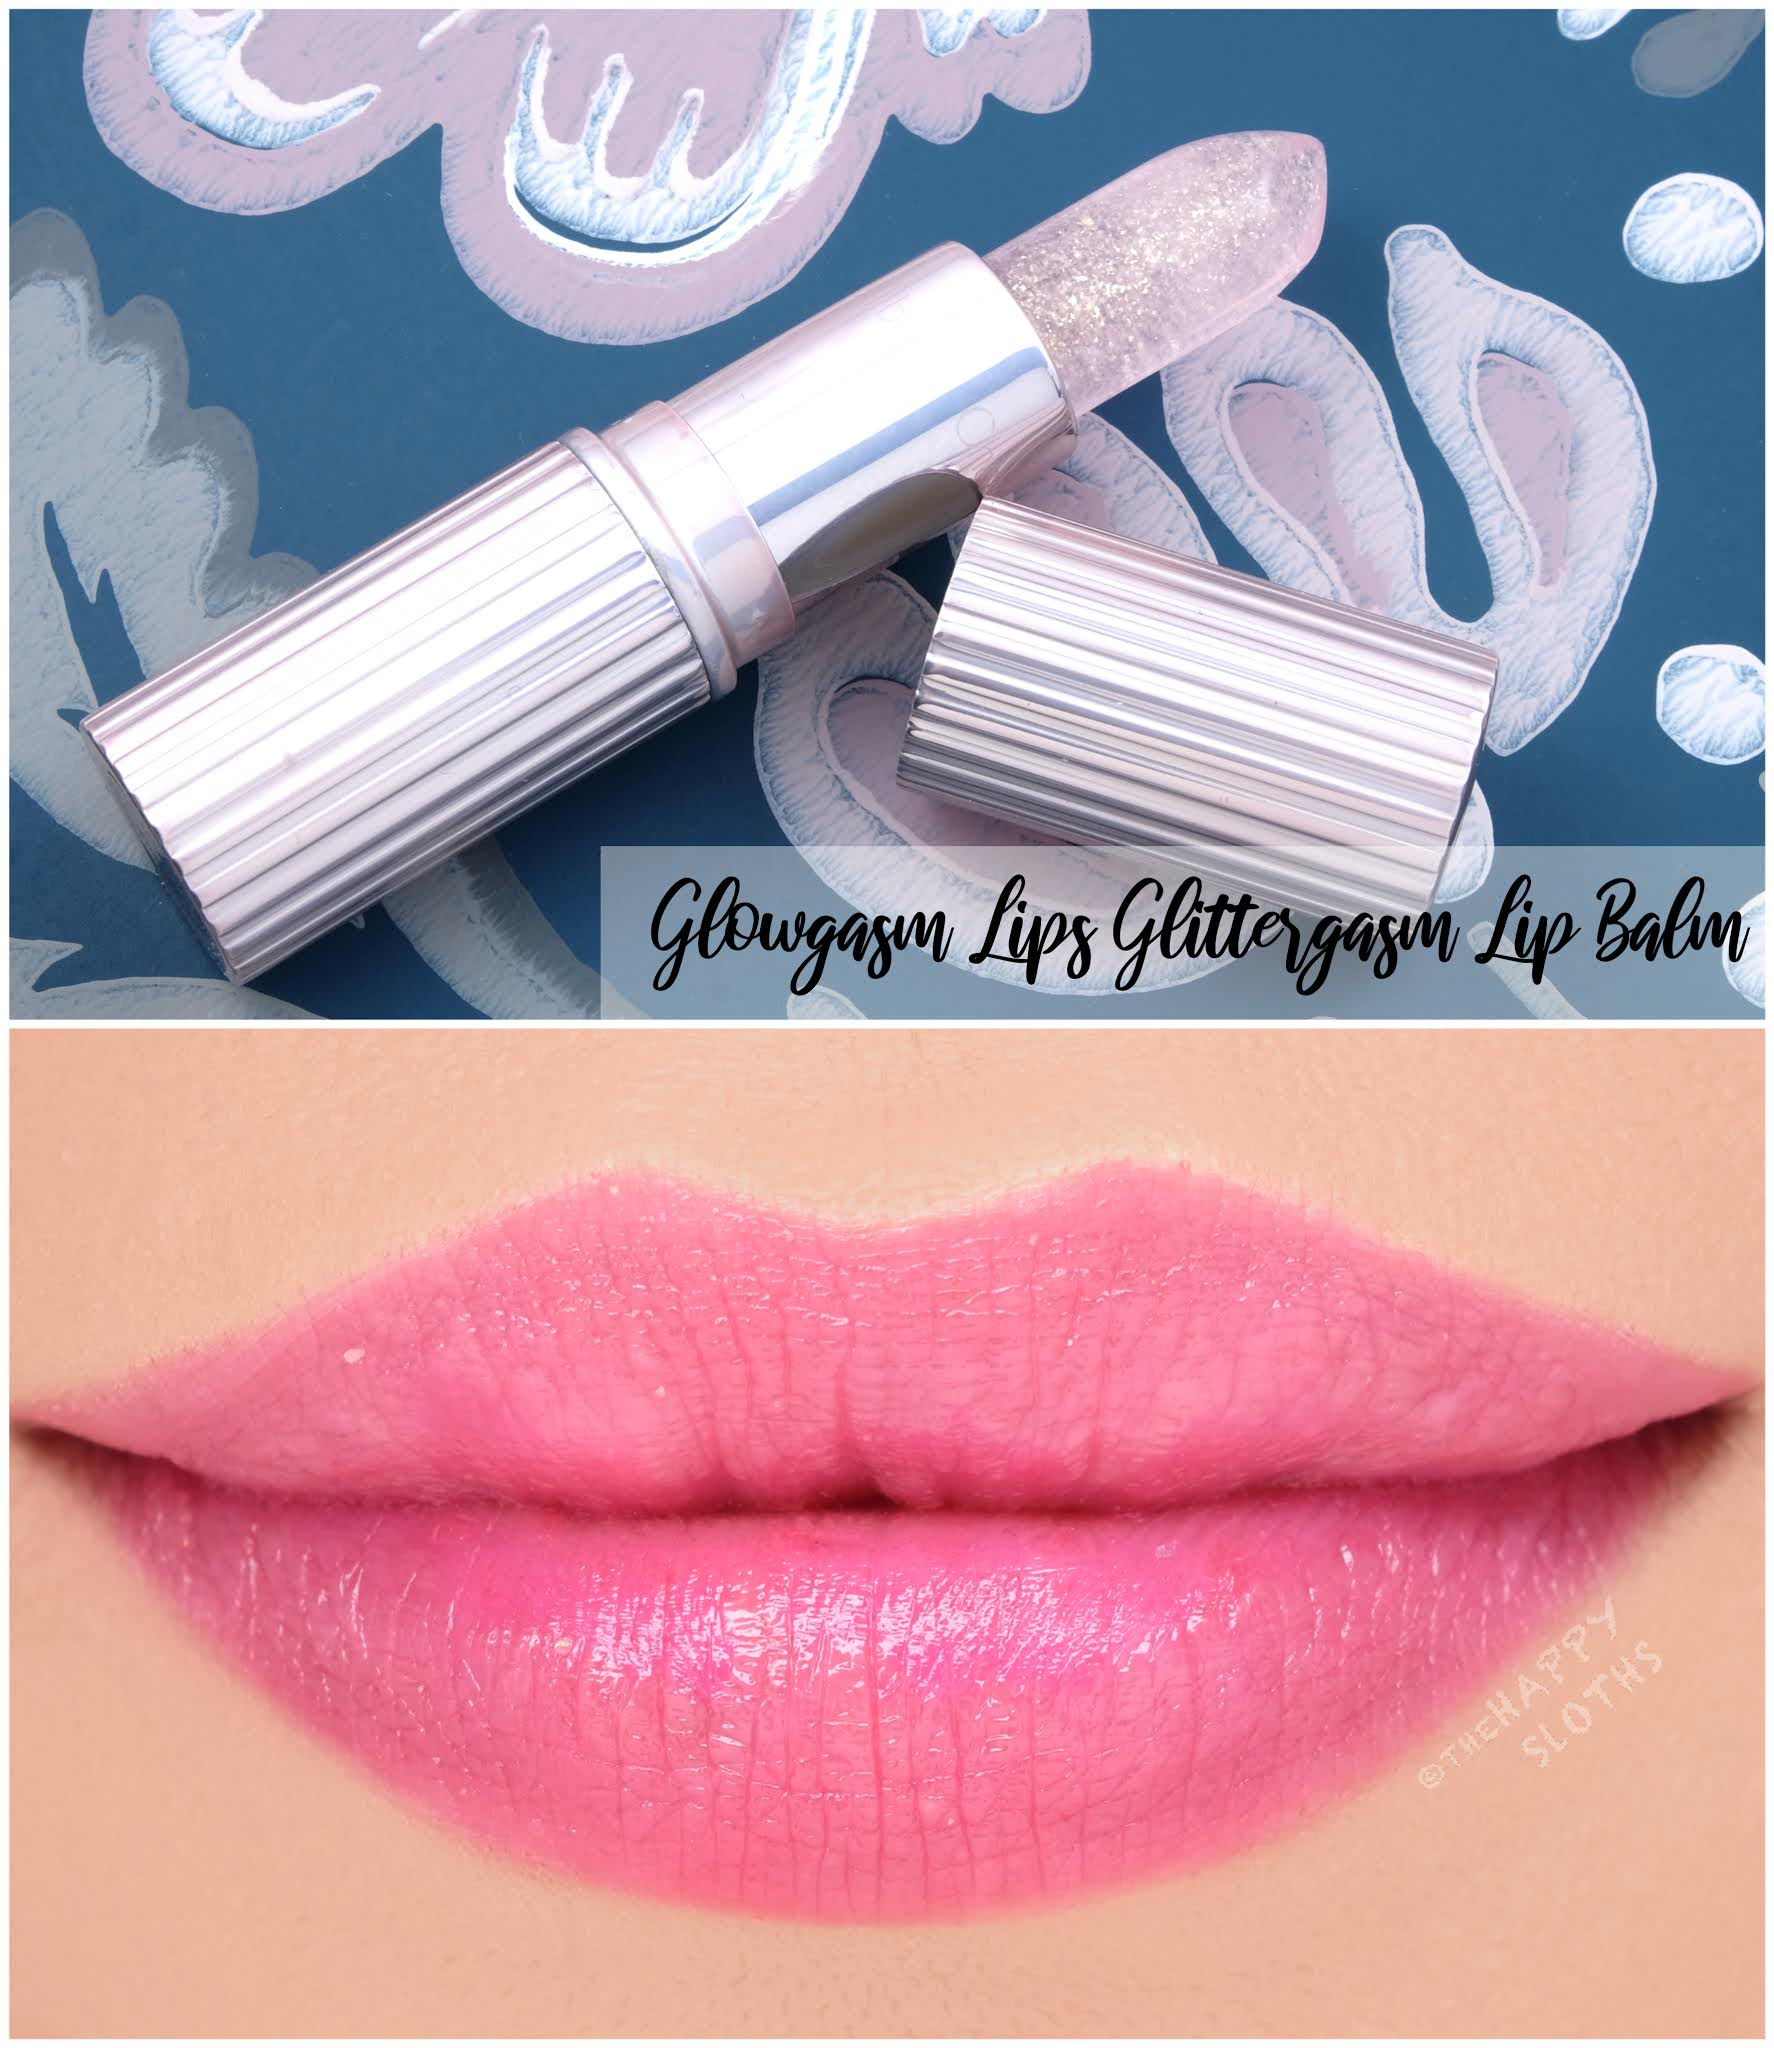 Charlotte Tilbury | Glowgasm Lips Glittergasm Lip Balm: Review and Swatches